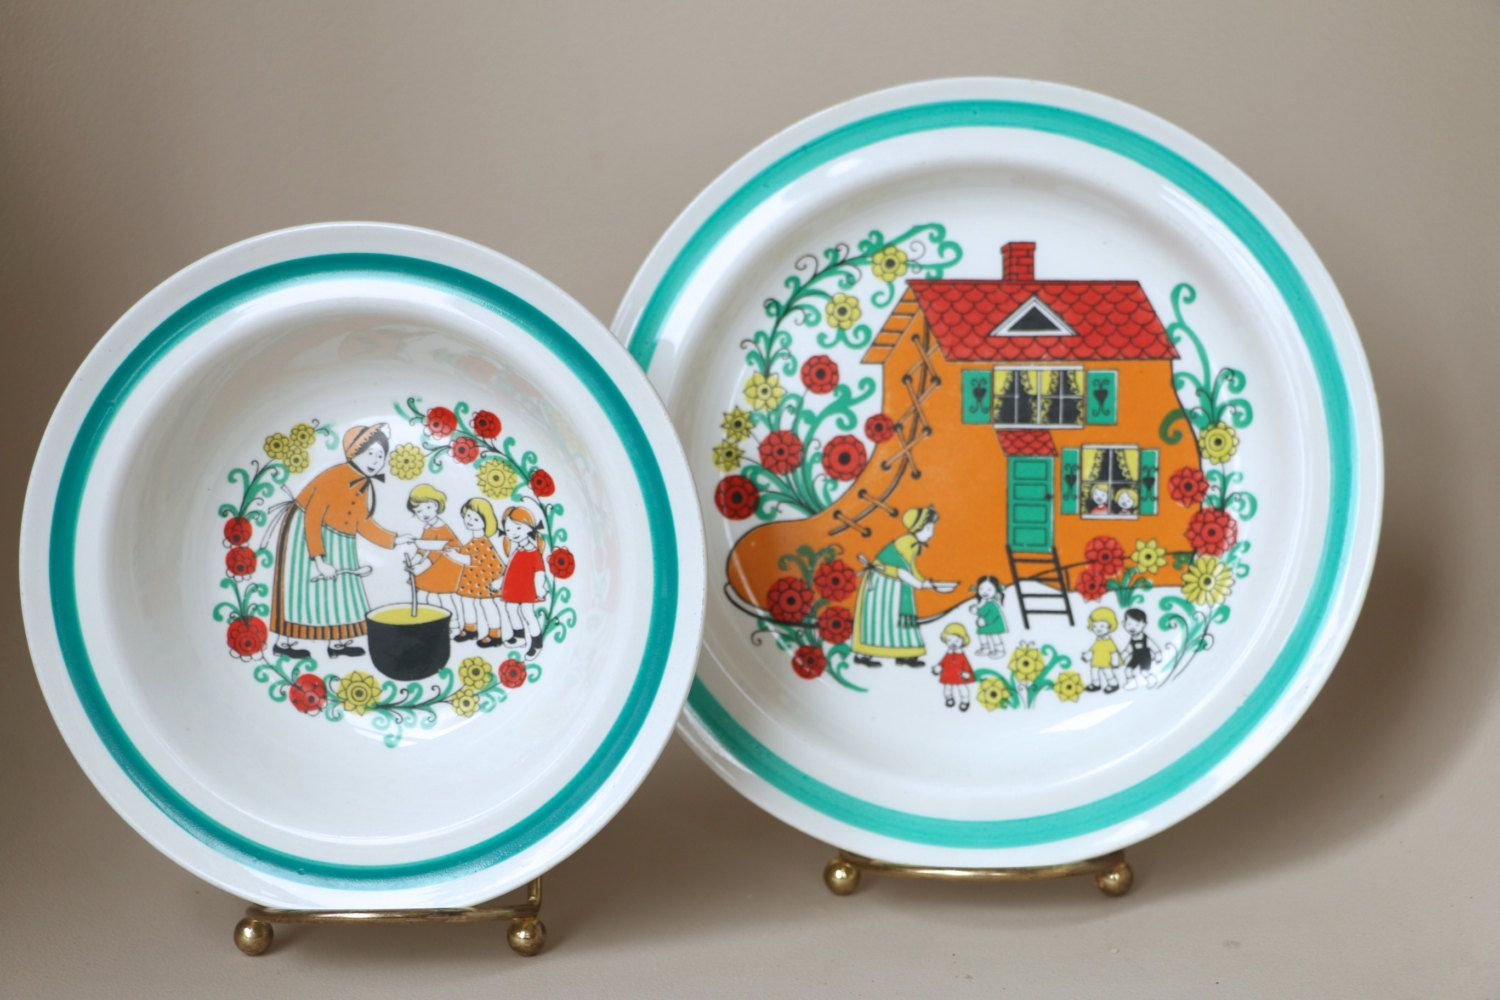 Arabia Finland Children S Plate And Bowl Set Old Woman In The Shoe 1960 S Dinnerware Mid Century Children S Dishes B Plates And Bowls Childrens Dishes Plates